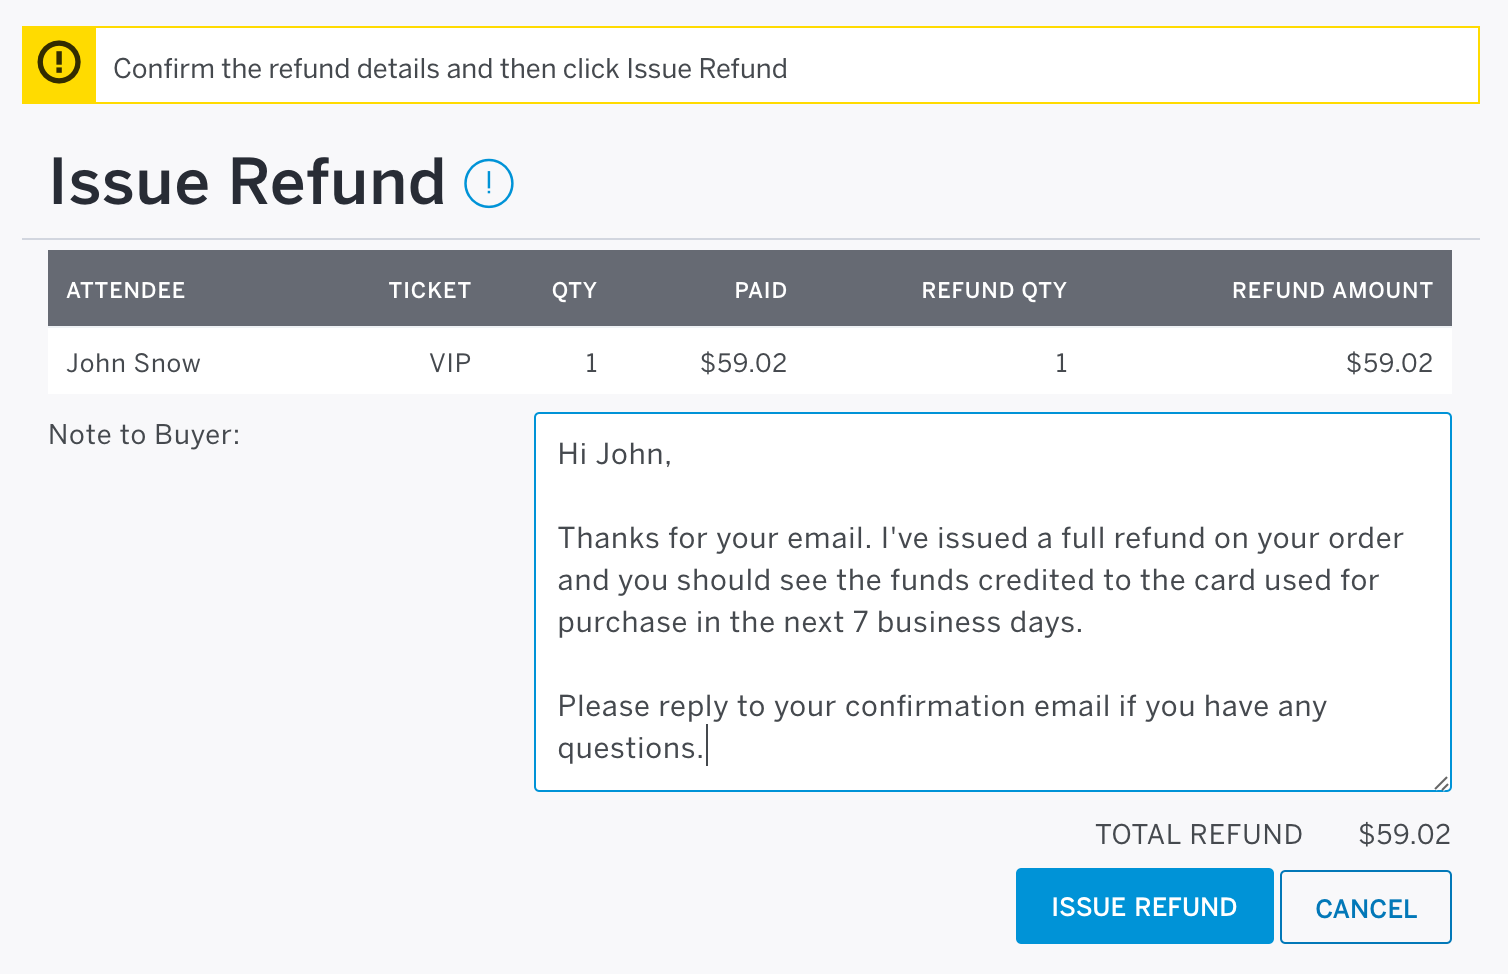 The Note to Buyer text field will appear near the bottom left of the Issue Refund screen.